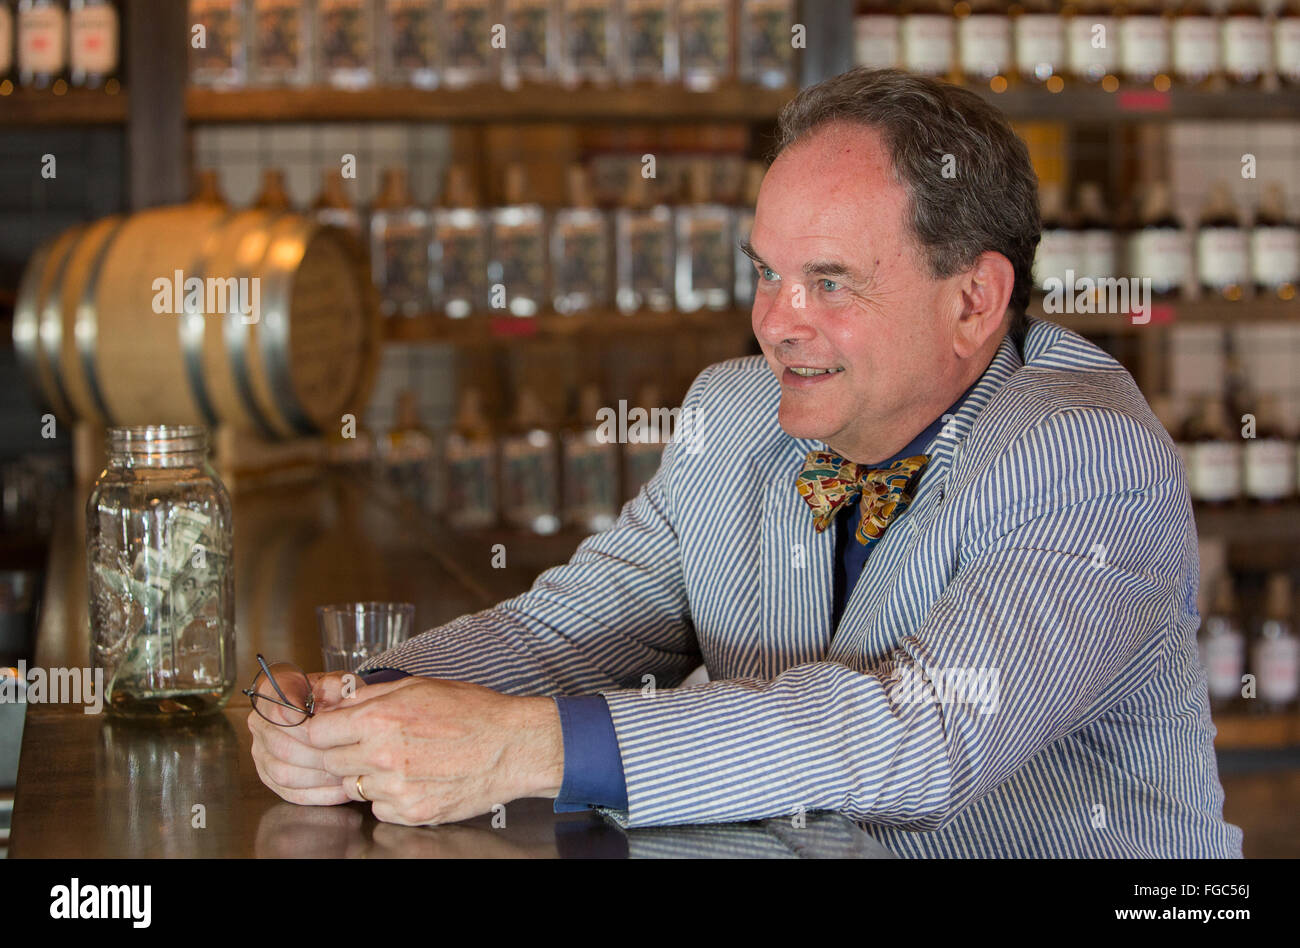 Southern Gentleman in bar with bowtie. - Stock Image